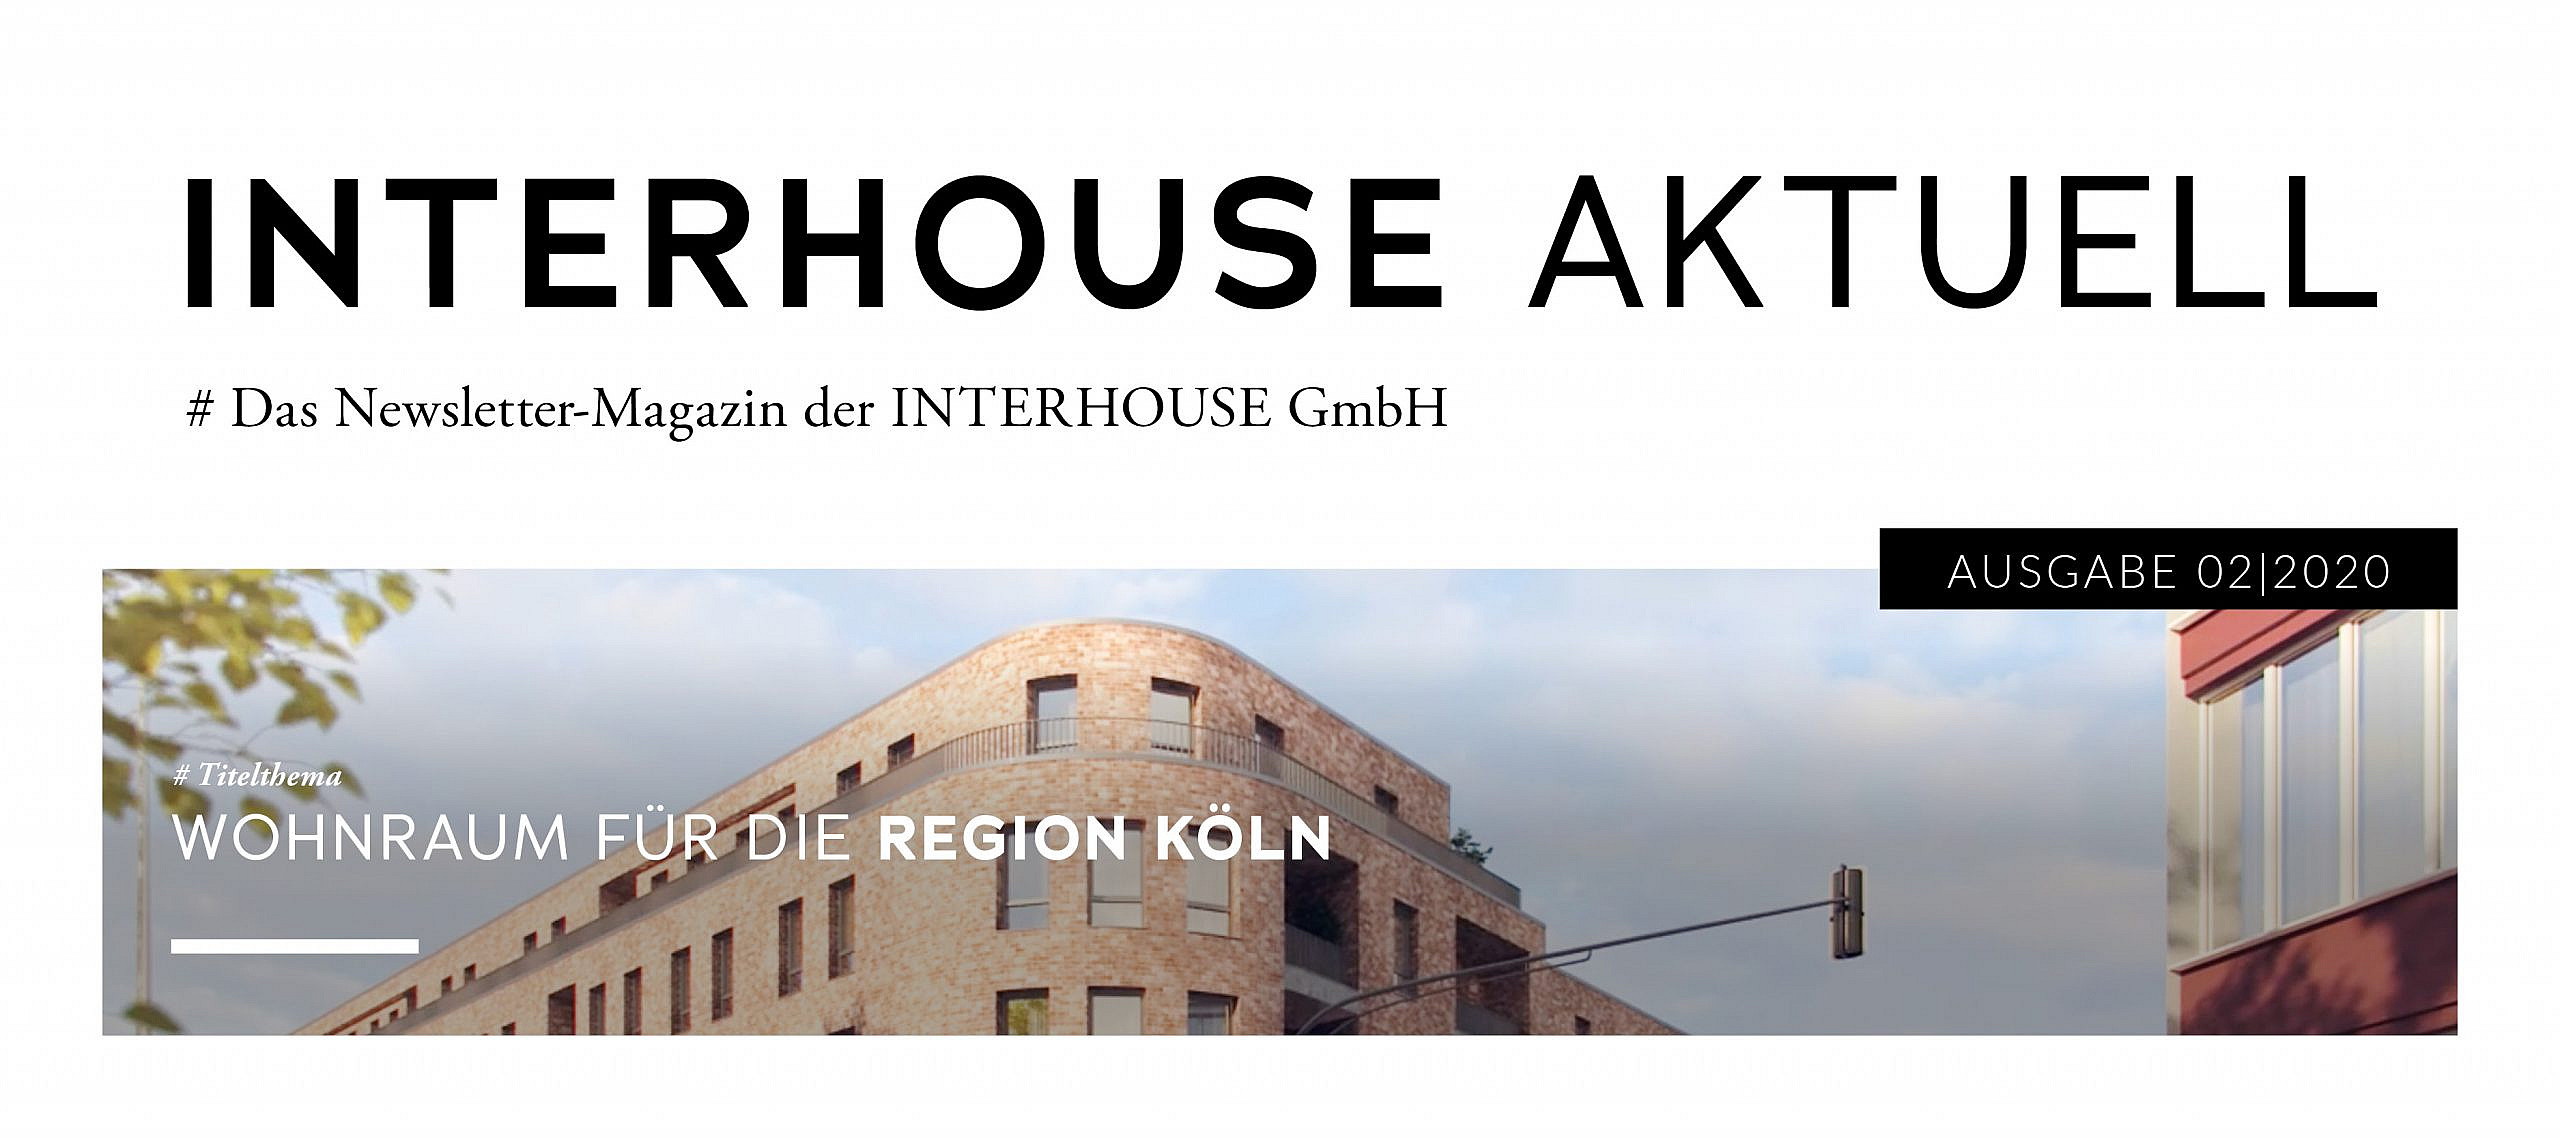 INTERHOUSE Aktuell 02/2020